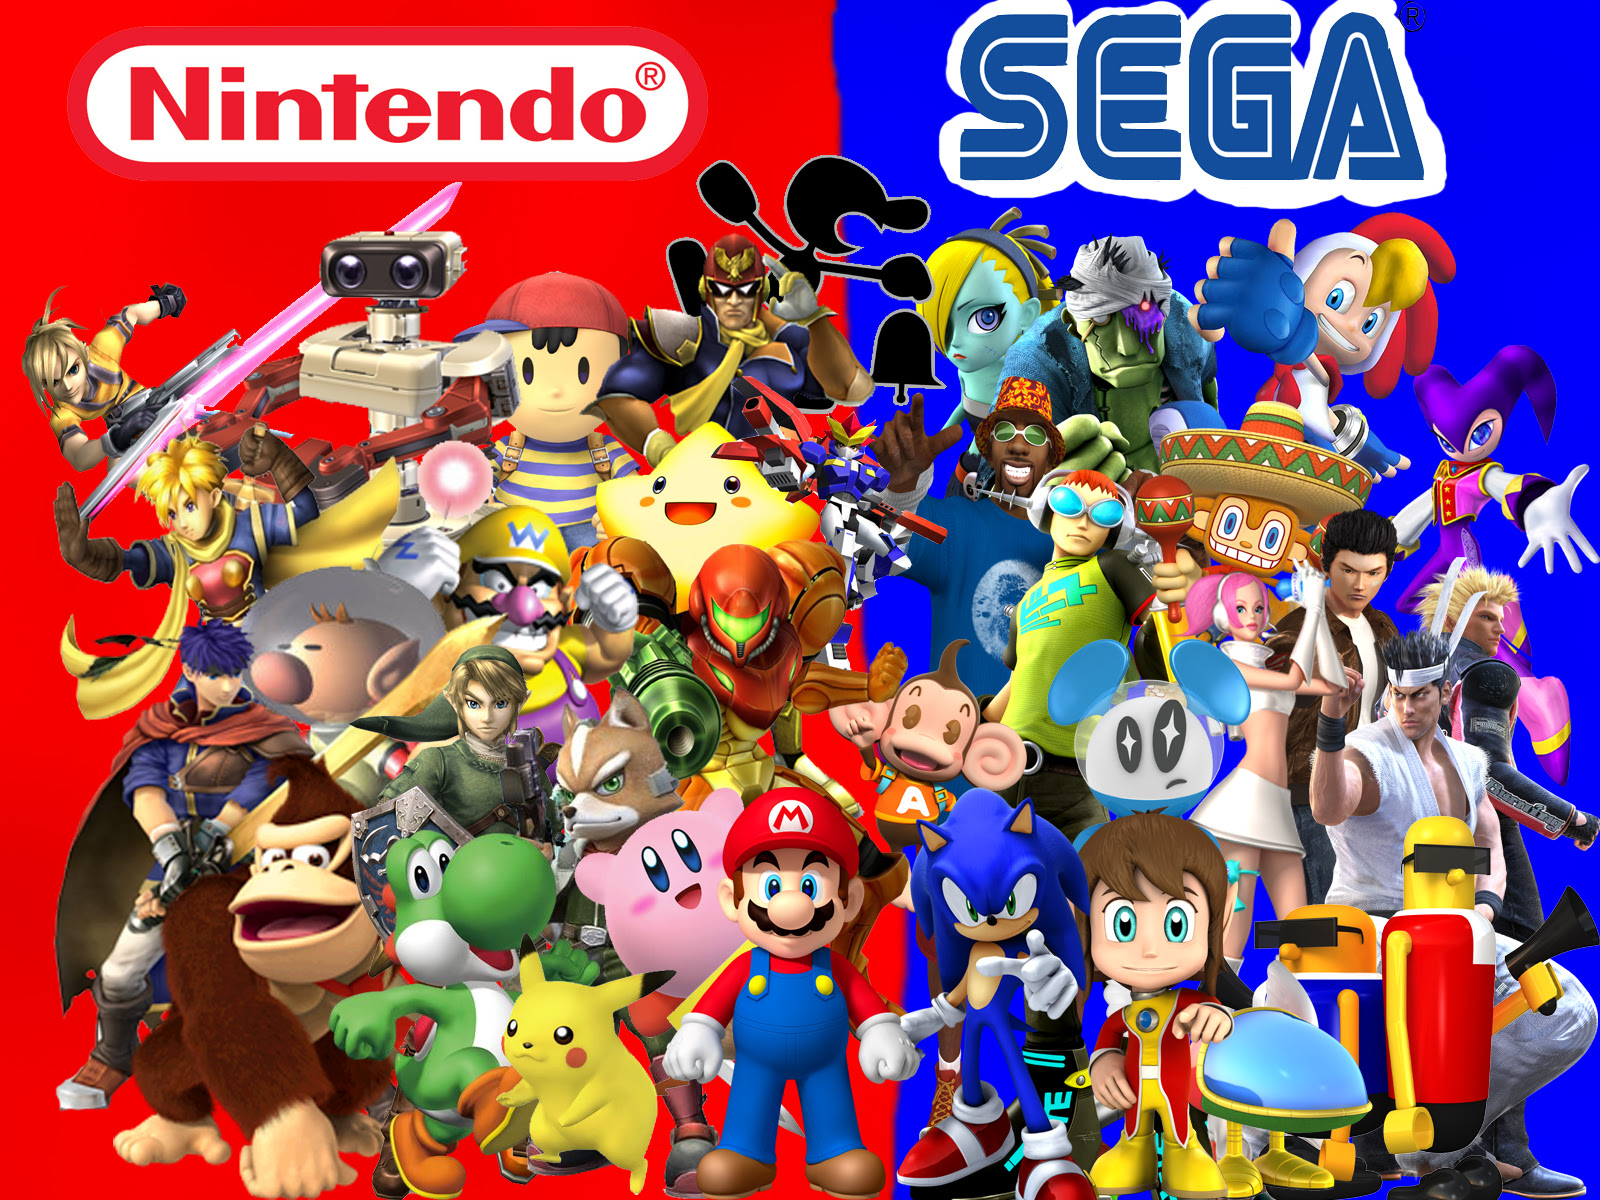 5 reasons why Nintendo should buy Sega | GamesBeat